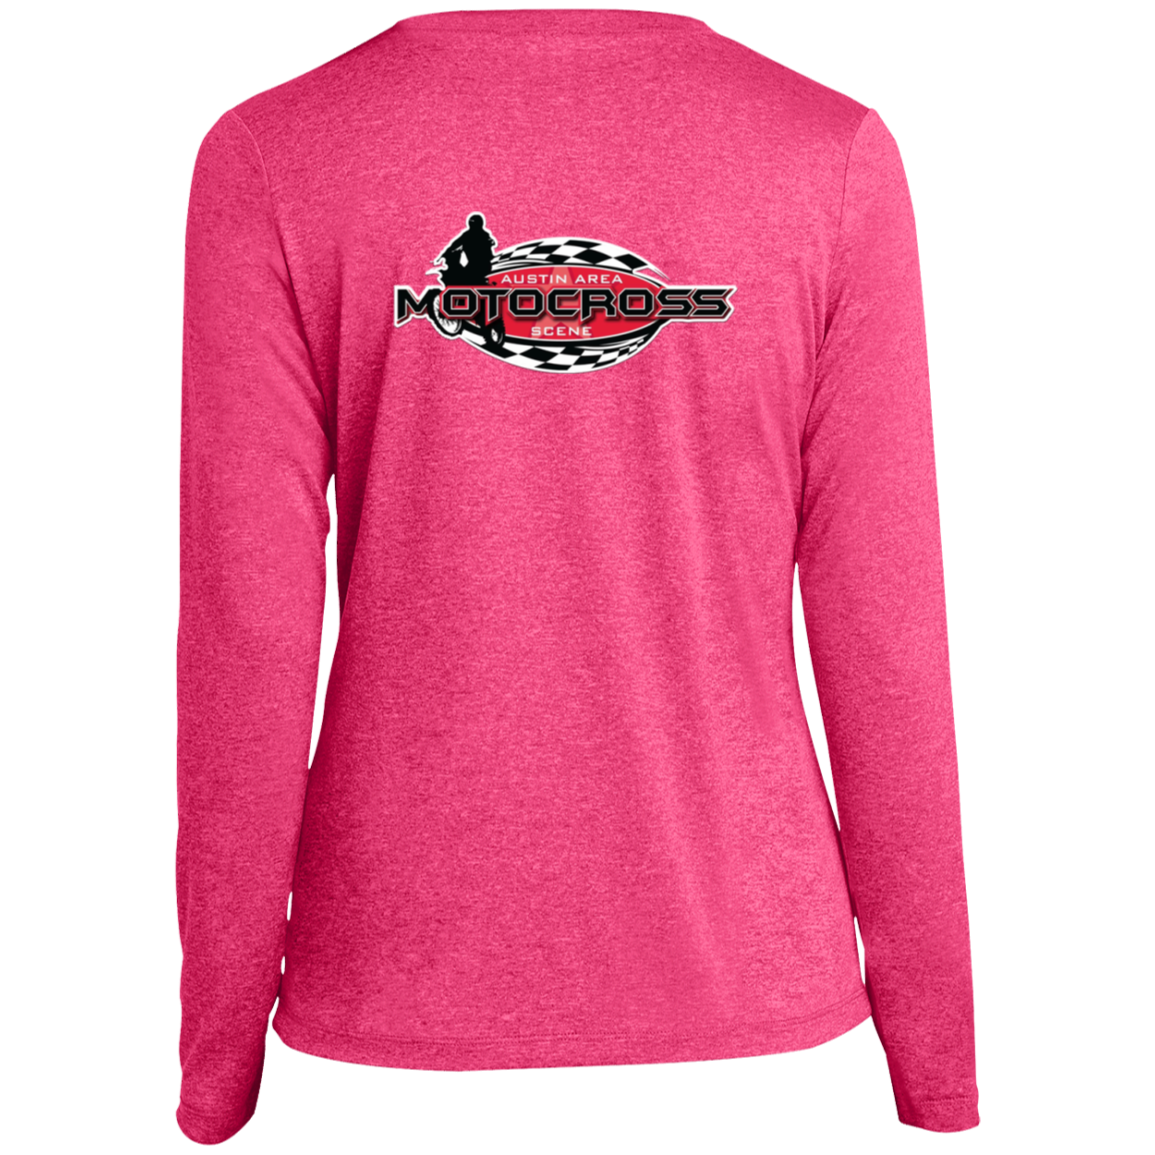 wills1mulisha Austin Area Motocross Scene Sport-Tek Ladies' LS Heather Dri-Fit V-Neck T-Shirt